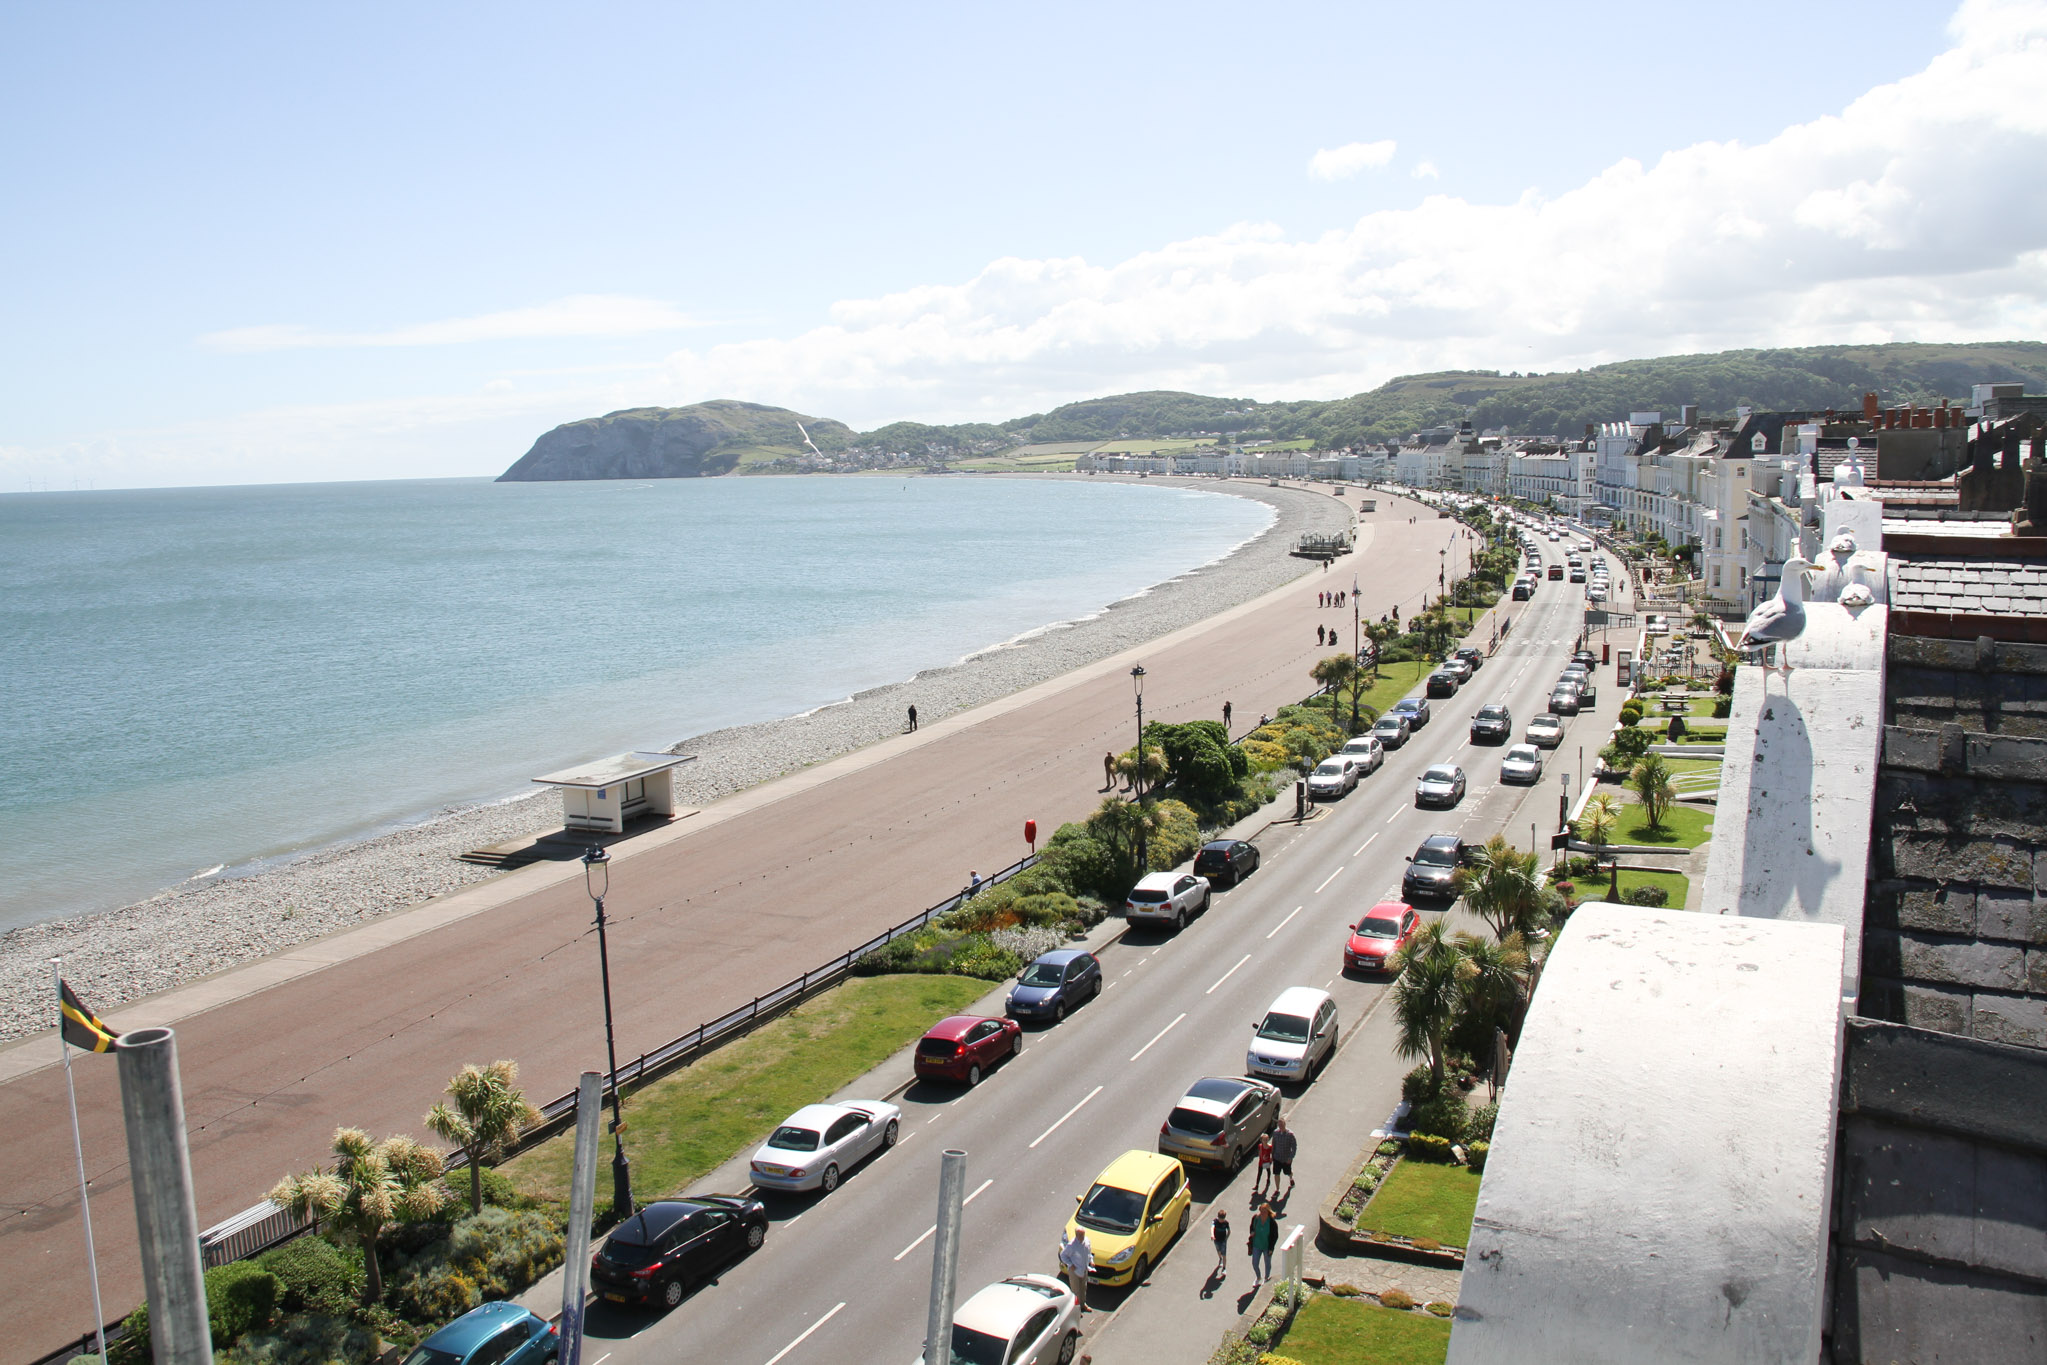 The young person absconded while in Llandudno